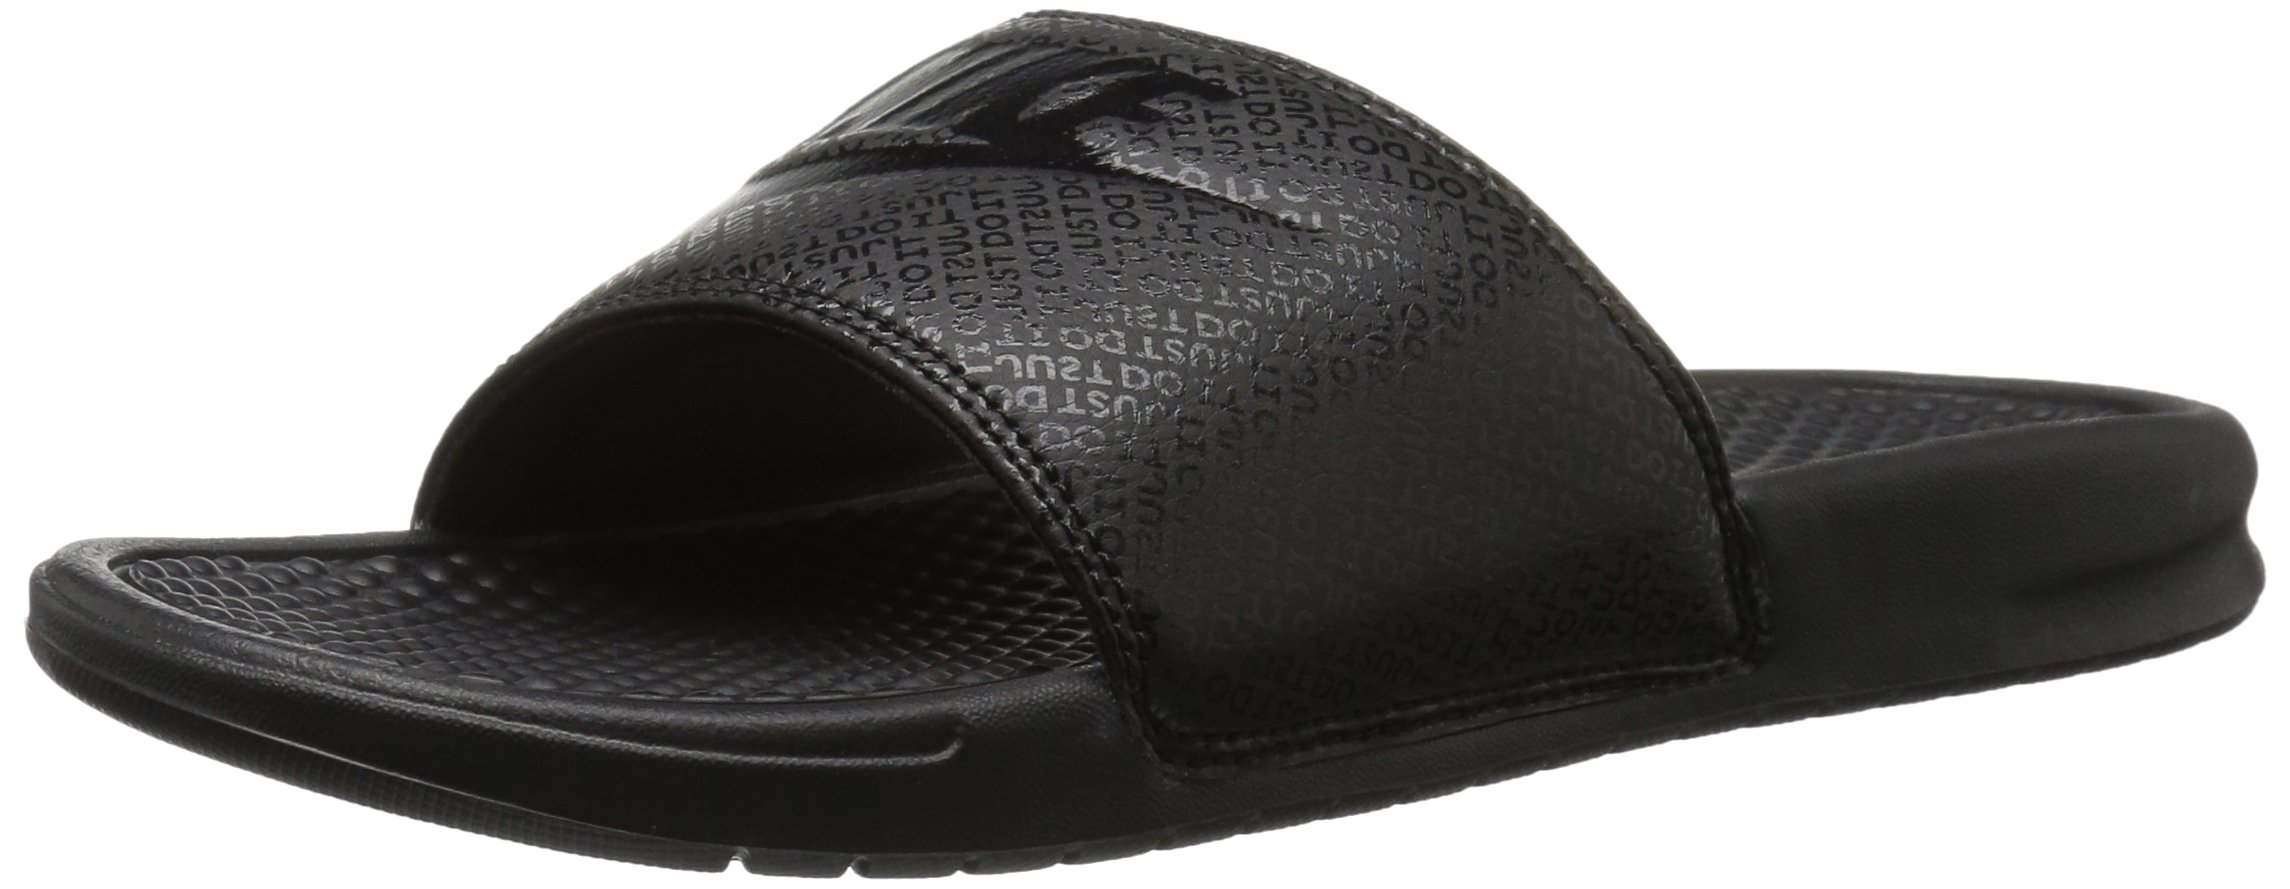 NIKE Men's Benassi Just Do It Slide Sandal, Black, 11 D(M) US